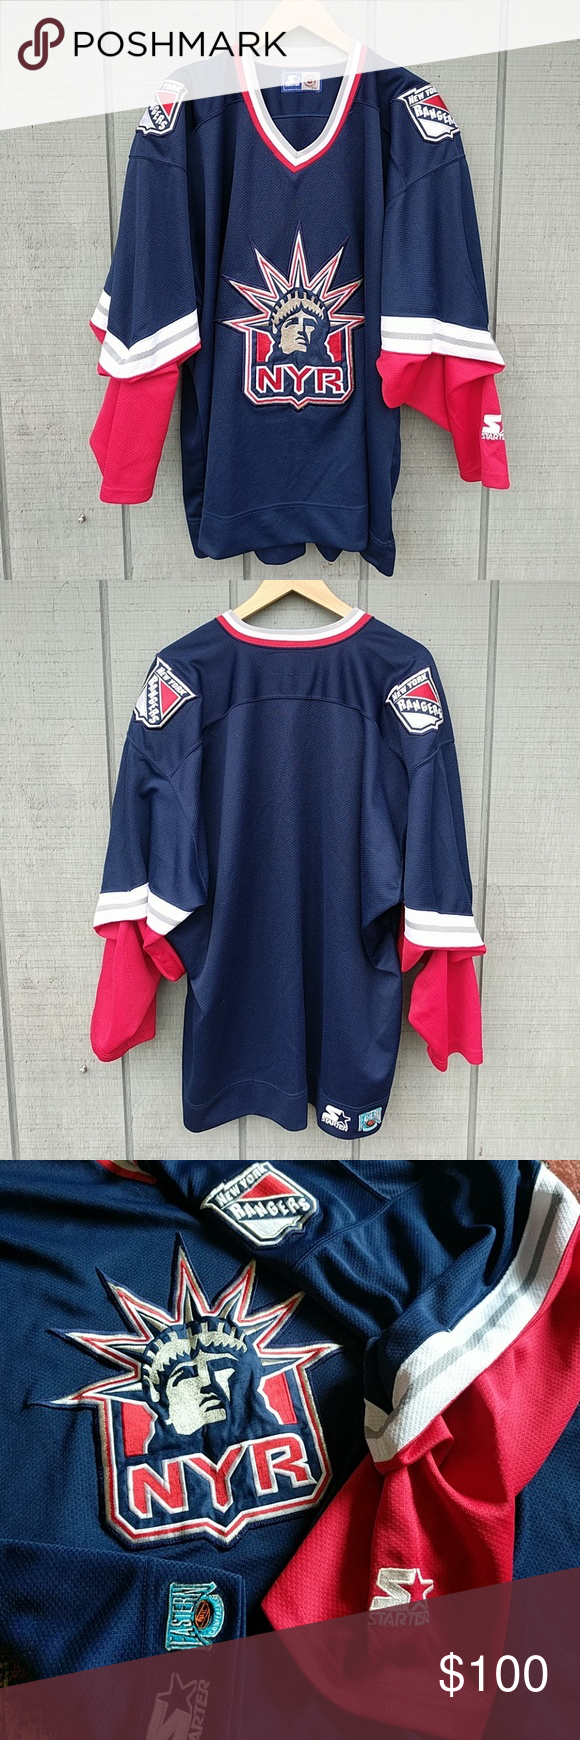 best service 14a7f deae8 Rare New York Rangers Lady Liberty Jersey XL Auth NHL New ...